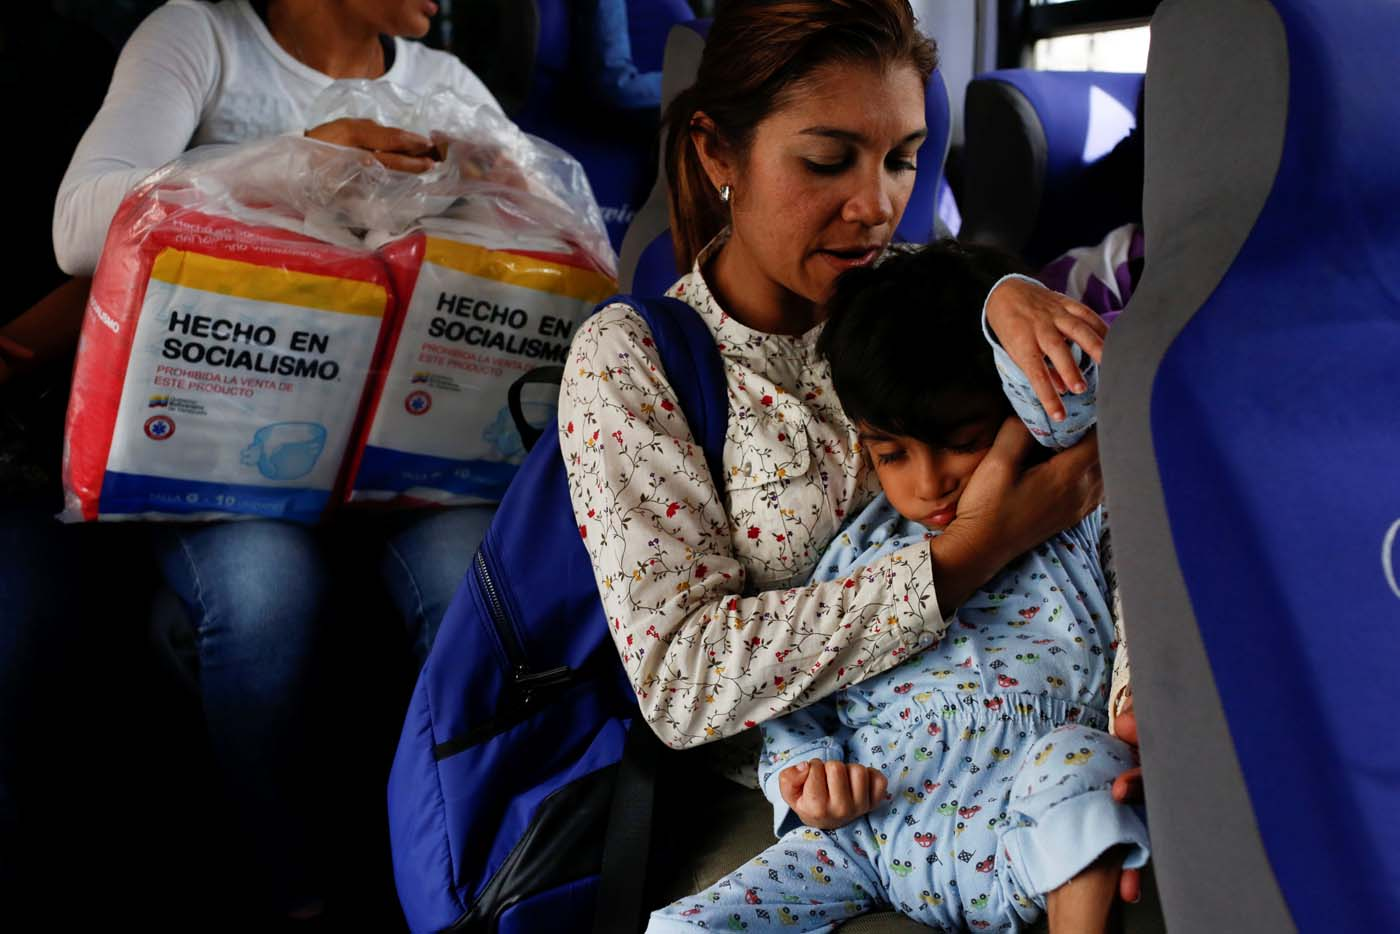 "Norymar Torres carries her son Leonardo Colmenares, 6, neurological patient being treated with anticonvulsants, while they travel on public transport in Caracas, Venezuela January 18, 2017. REUTERS/Carlos Garcia Rawlins   SEARCH ""EPILEPSY CARACAS"" FOR THIS STORY. SEARCH ""WIDER IMAGE"" FOR ALL STORIES."